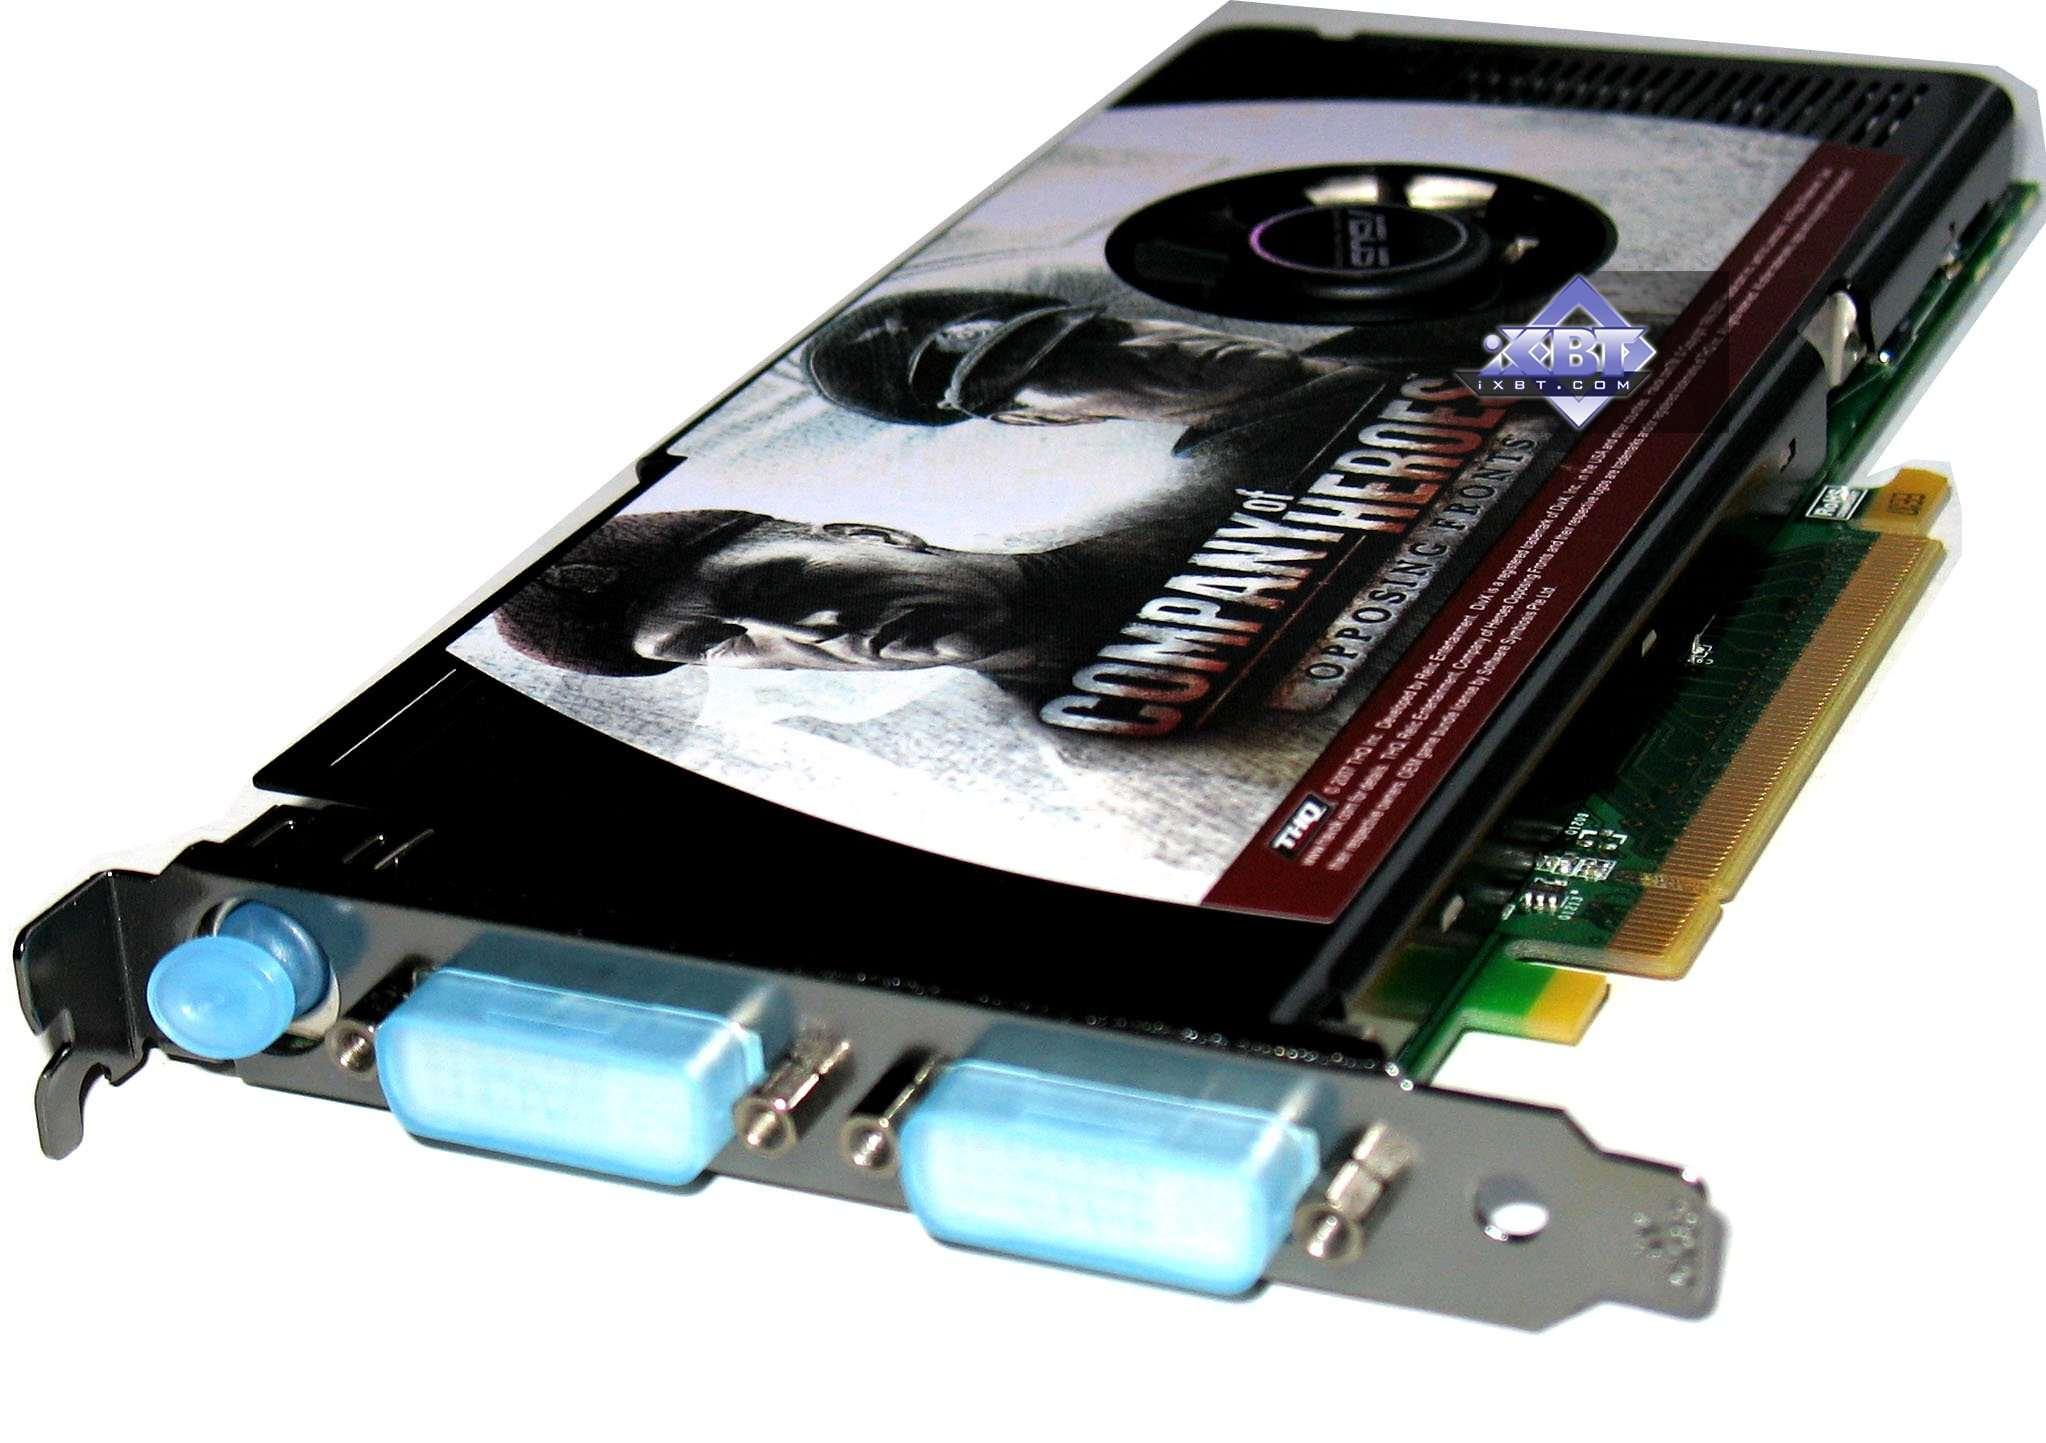 Video card nVidia Geforce 8800 GT: characteristics, comparison by competitors and reviews 75